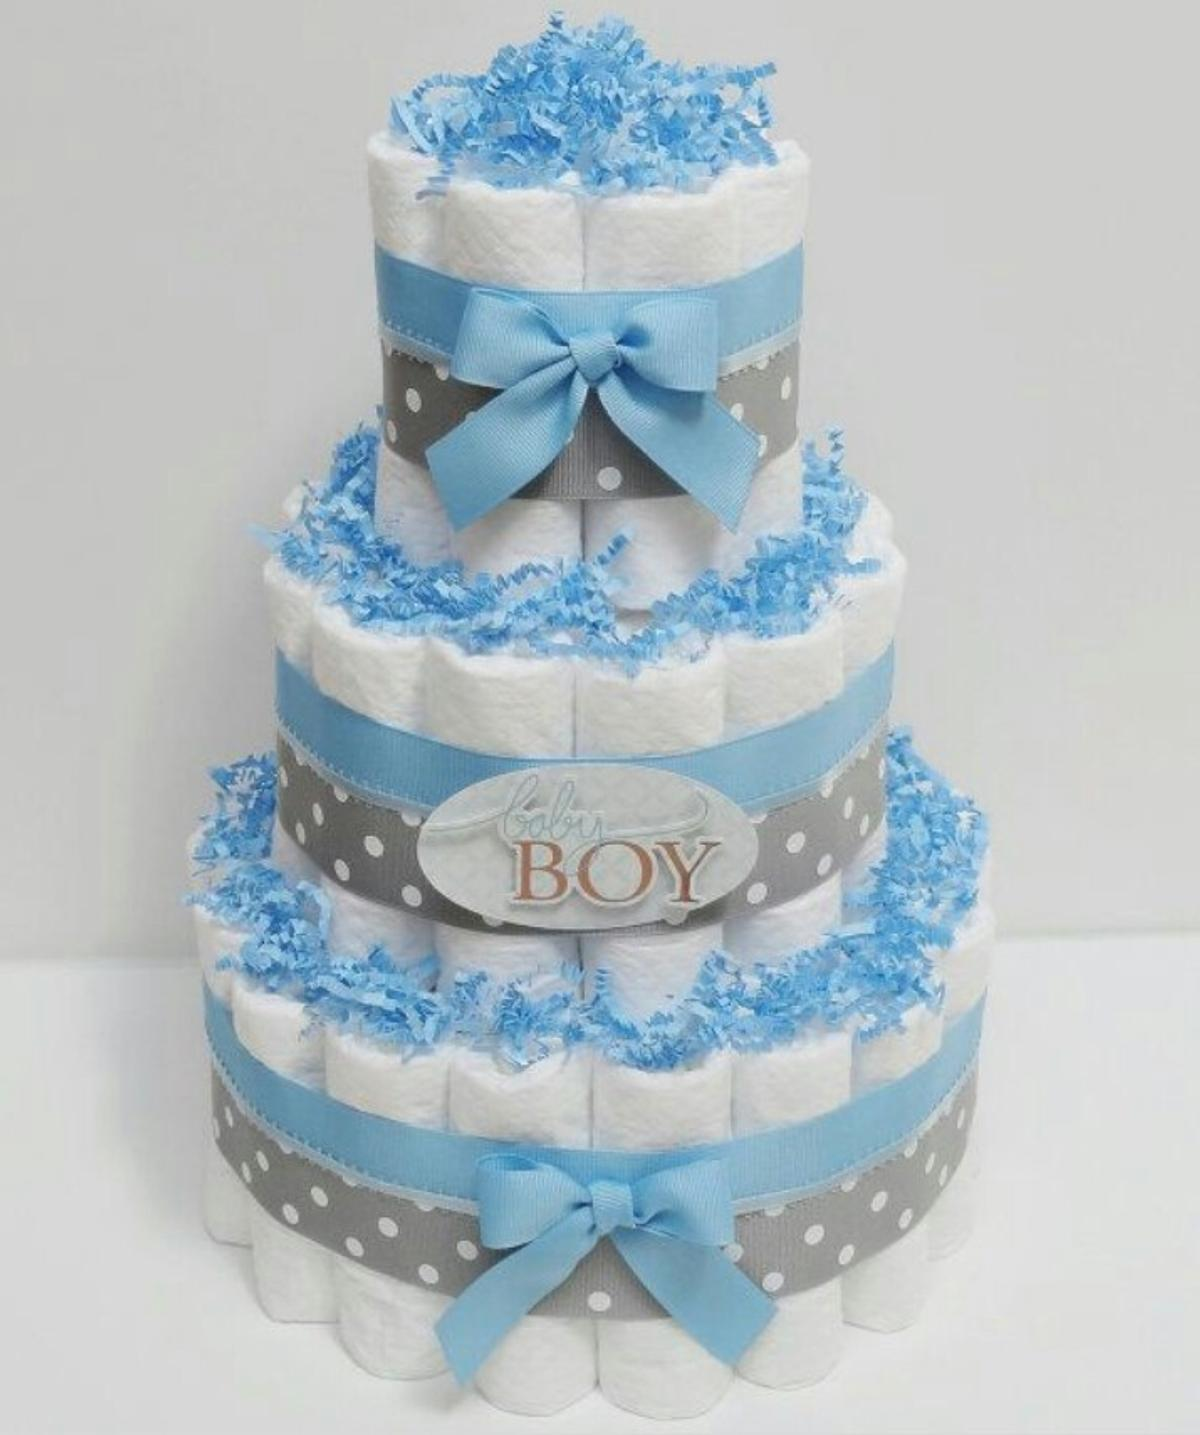 This is a cake with diapers. nice gift for baby boy B12